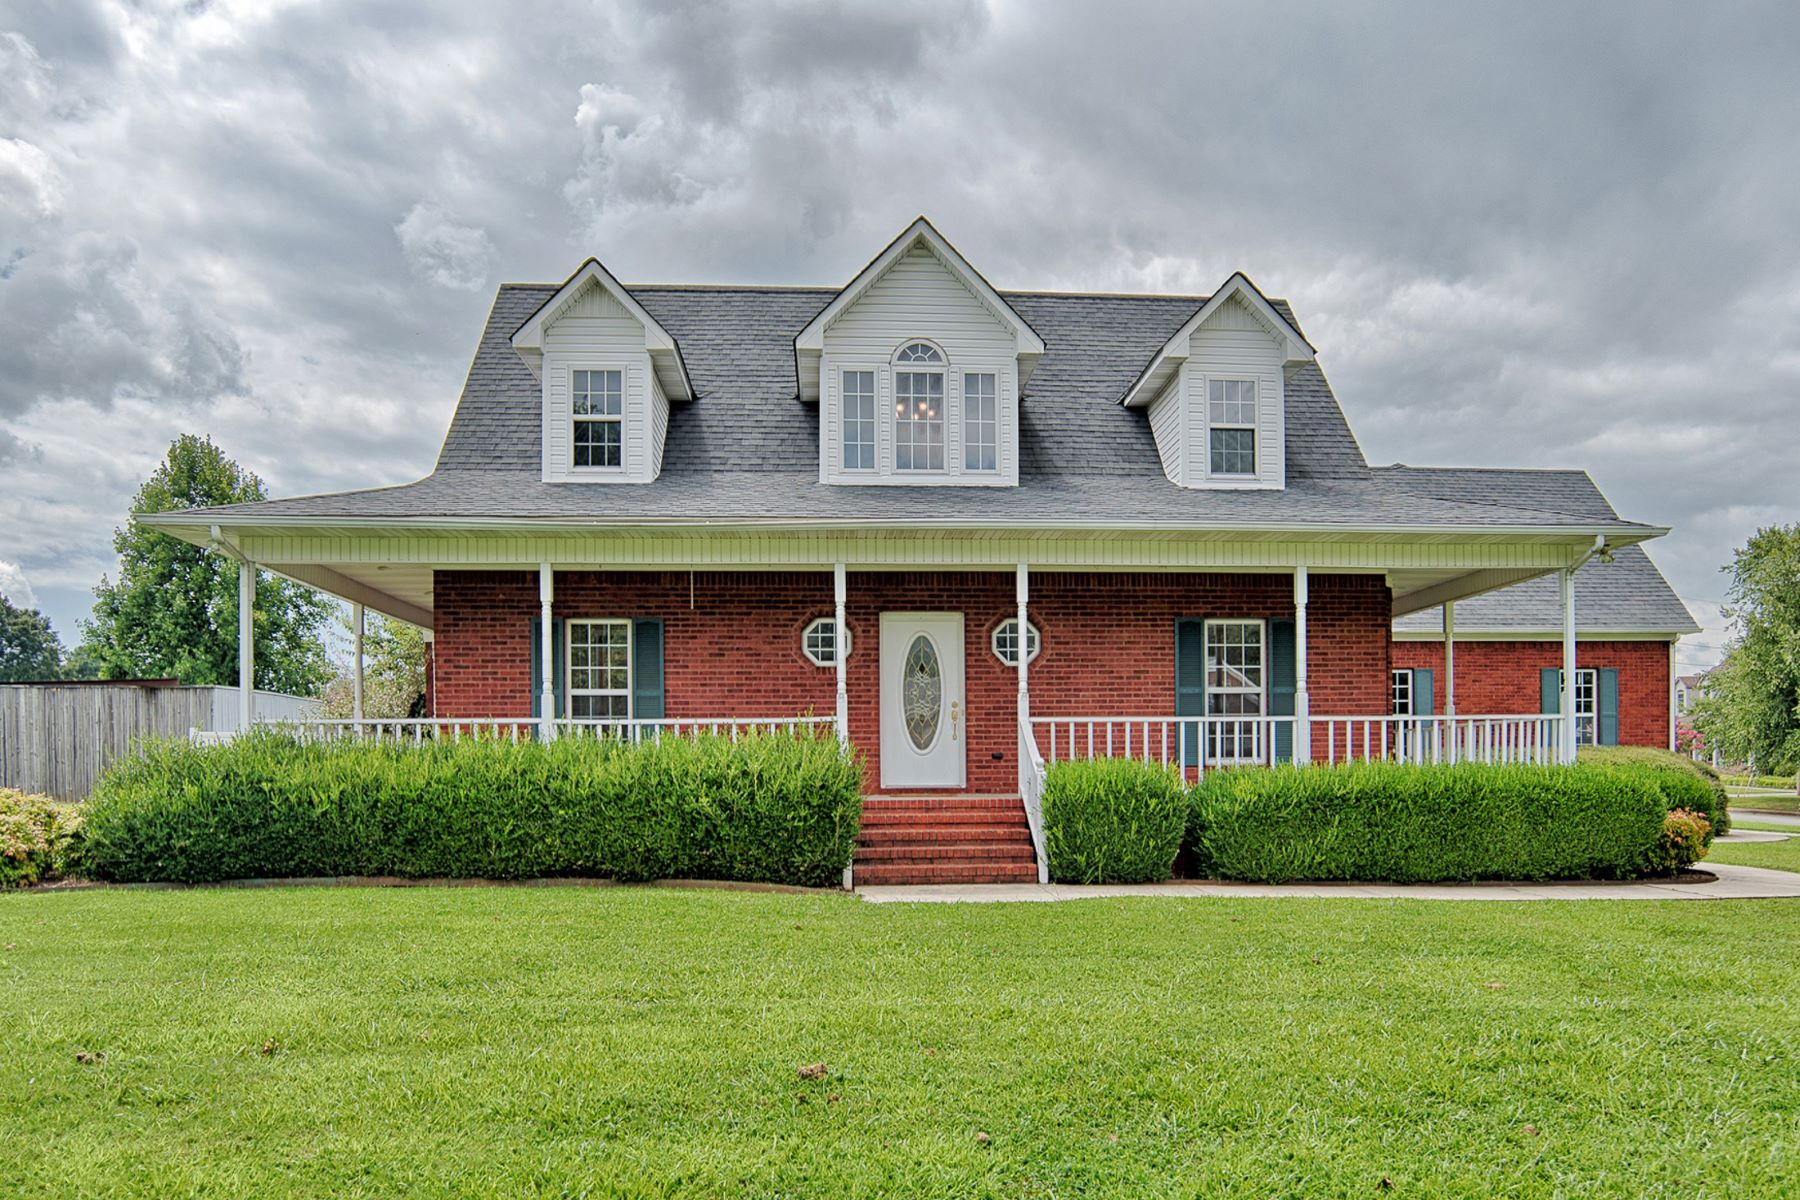 Single Family Home for Active at 17600 MARTIN DRIVE Athens, Alabama 35611 United States